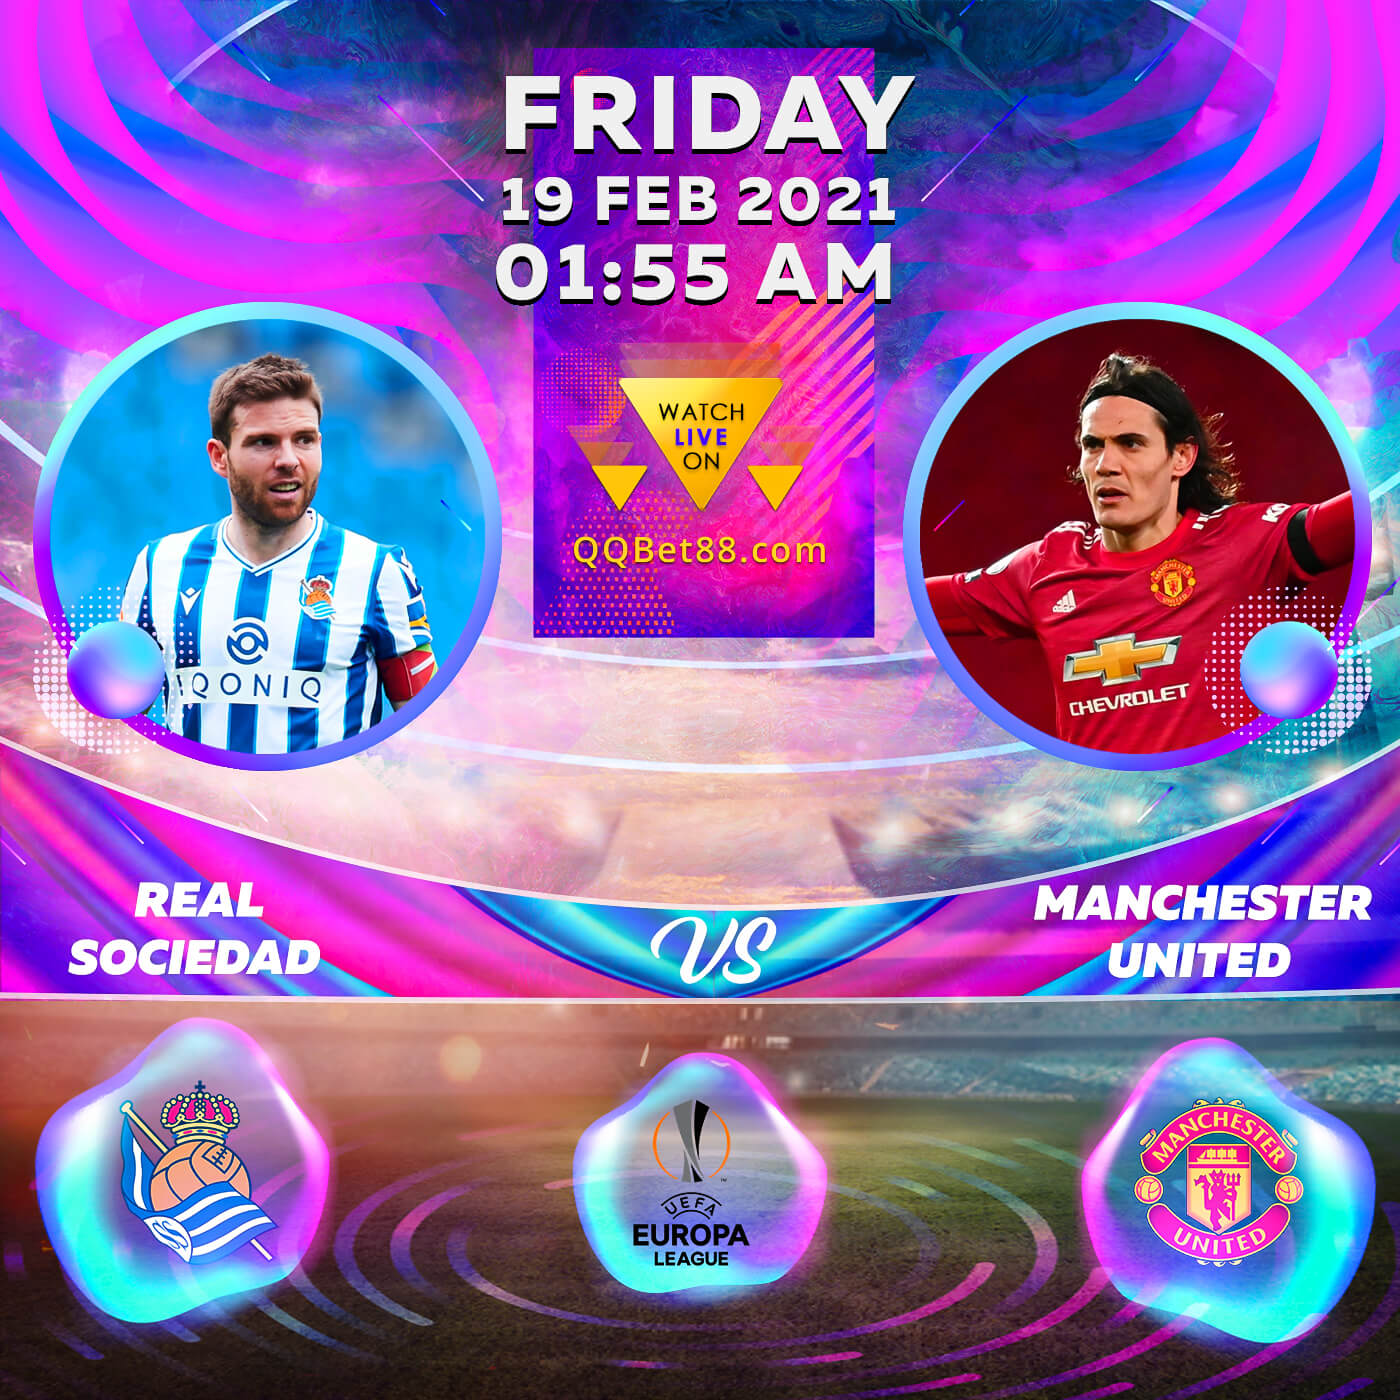 Real Sociedad VS Manchester United